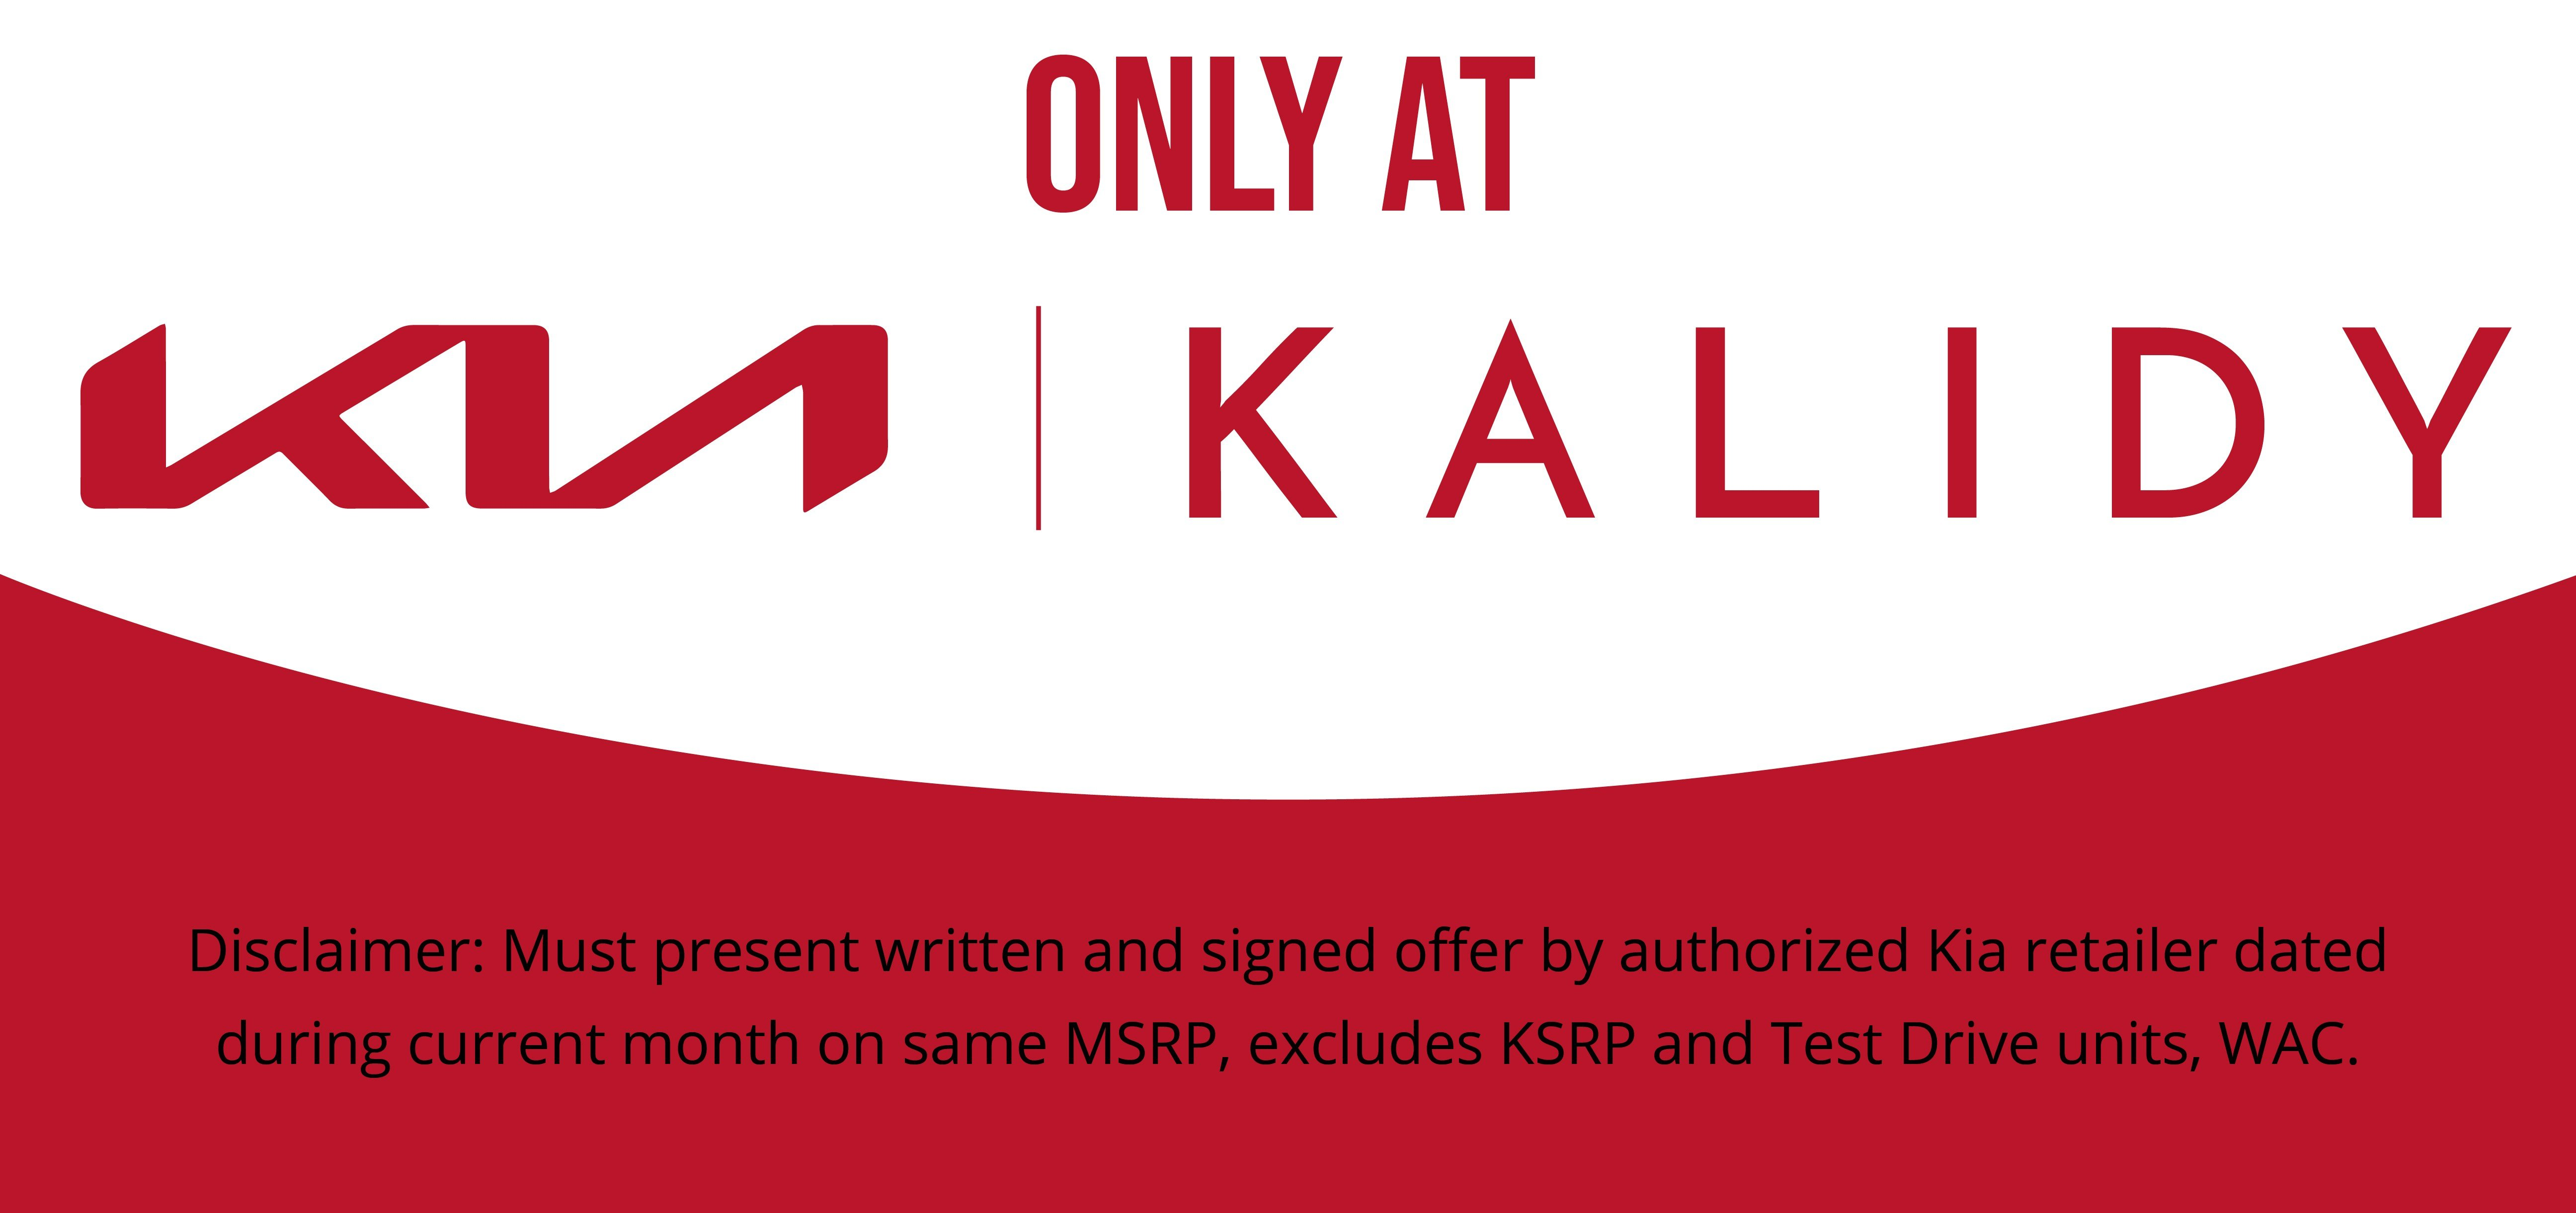 Only At Kalidy Kia Disclaimer: Must present written and signed offer by authorized Kia retailer dated during current month on same MSRP, excludes KSRP and Test Drive units, WAC.